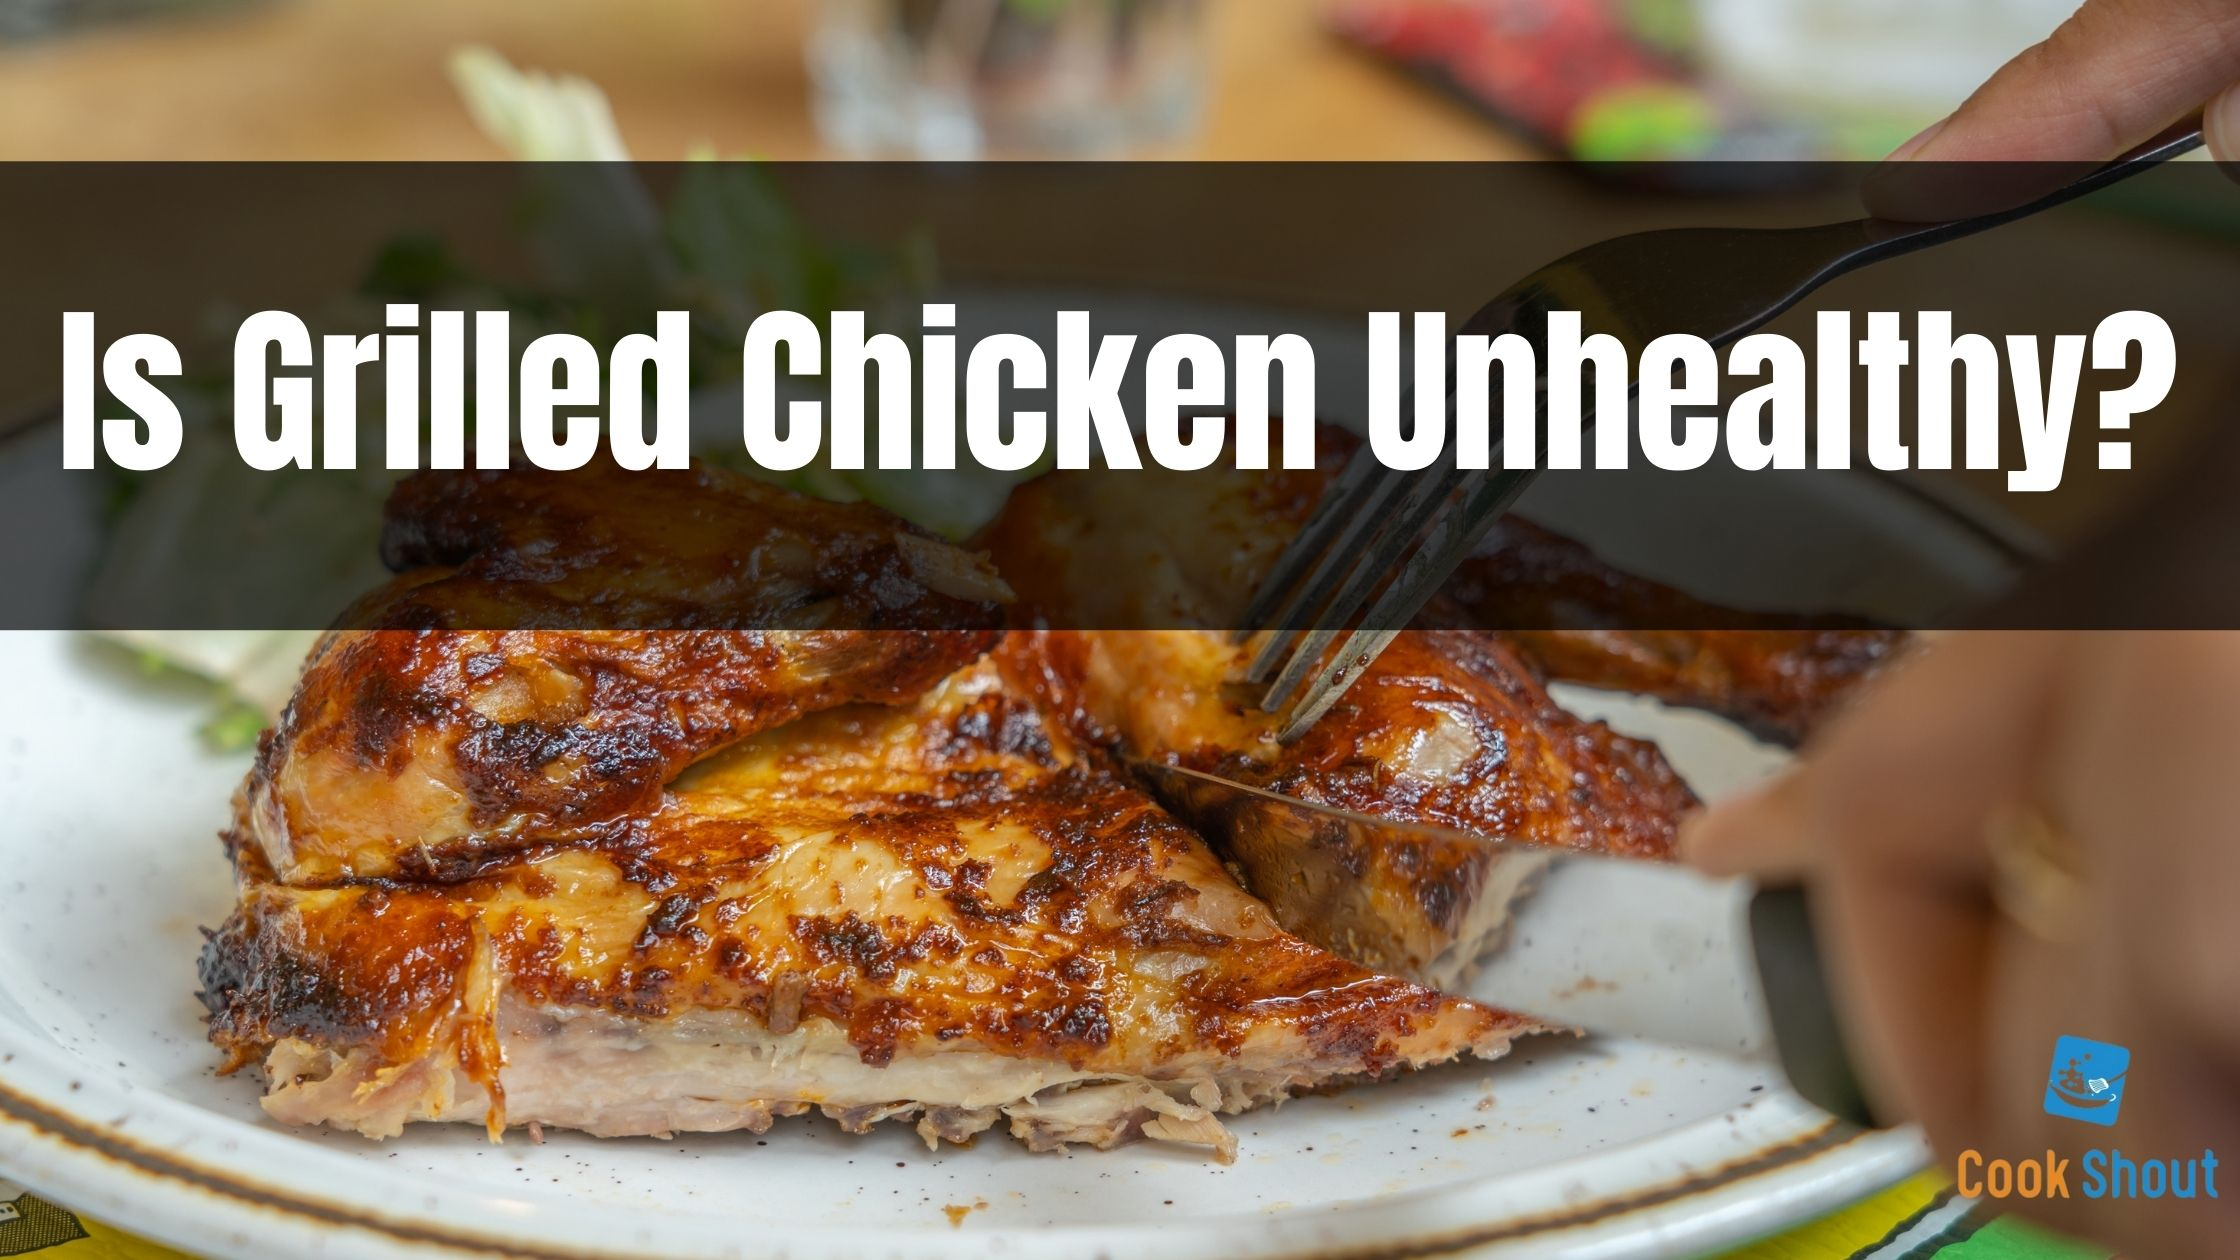 Is Grilled Chicken Unhealthy